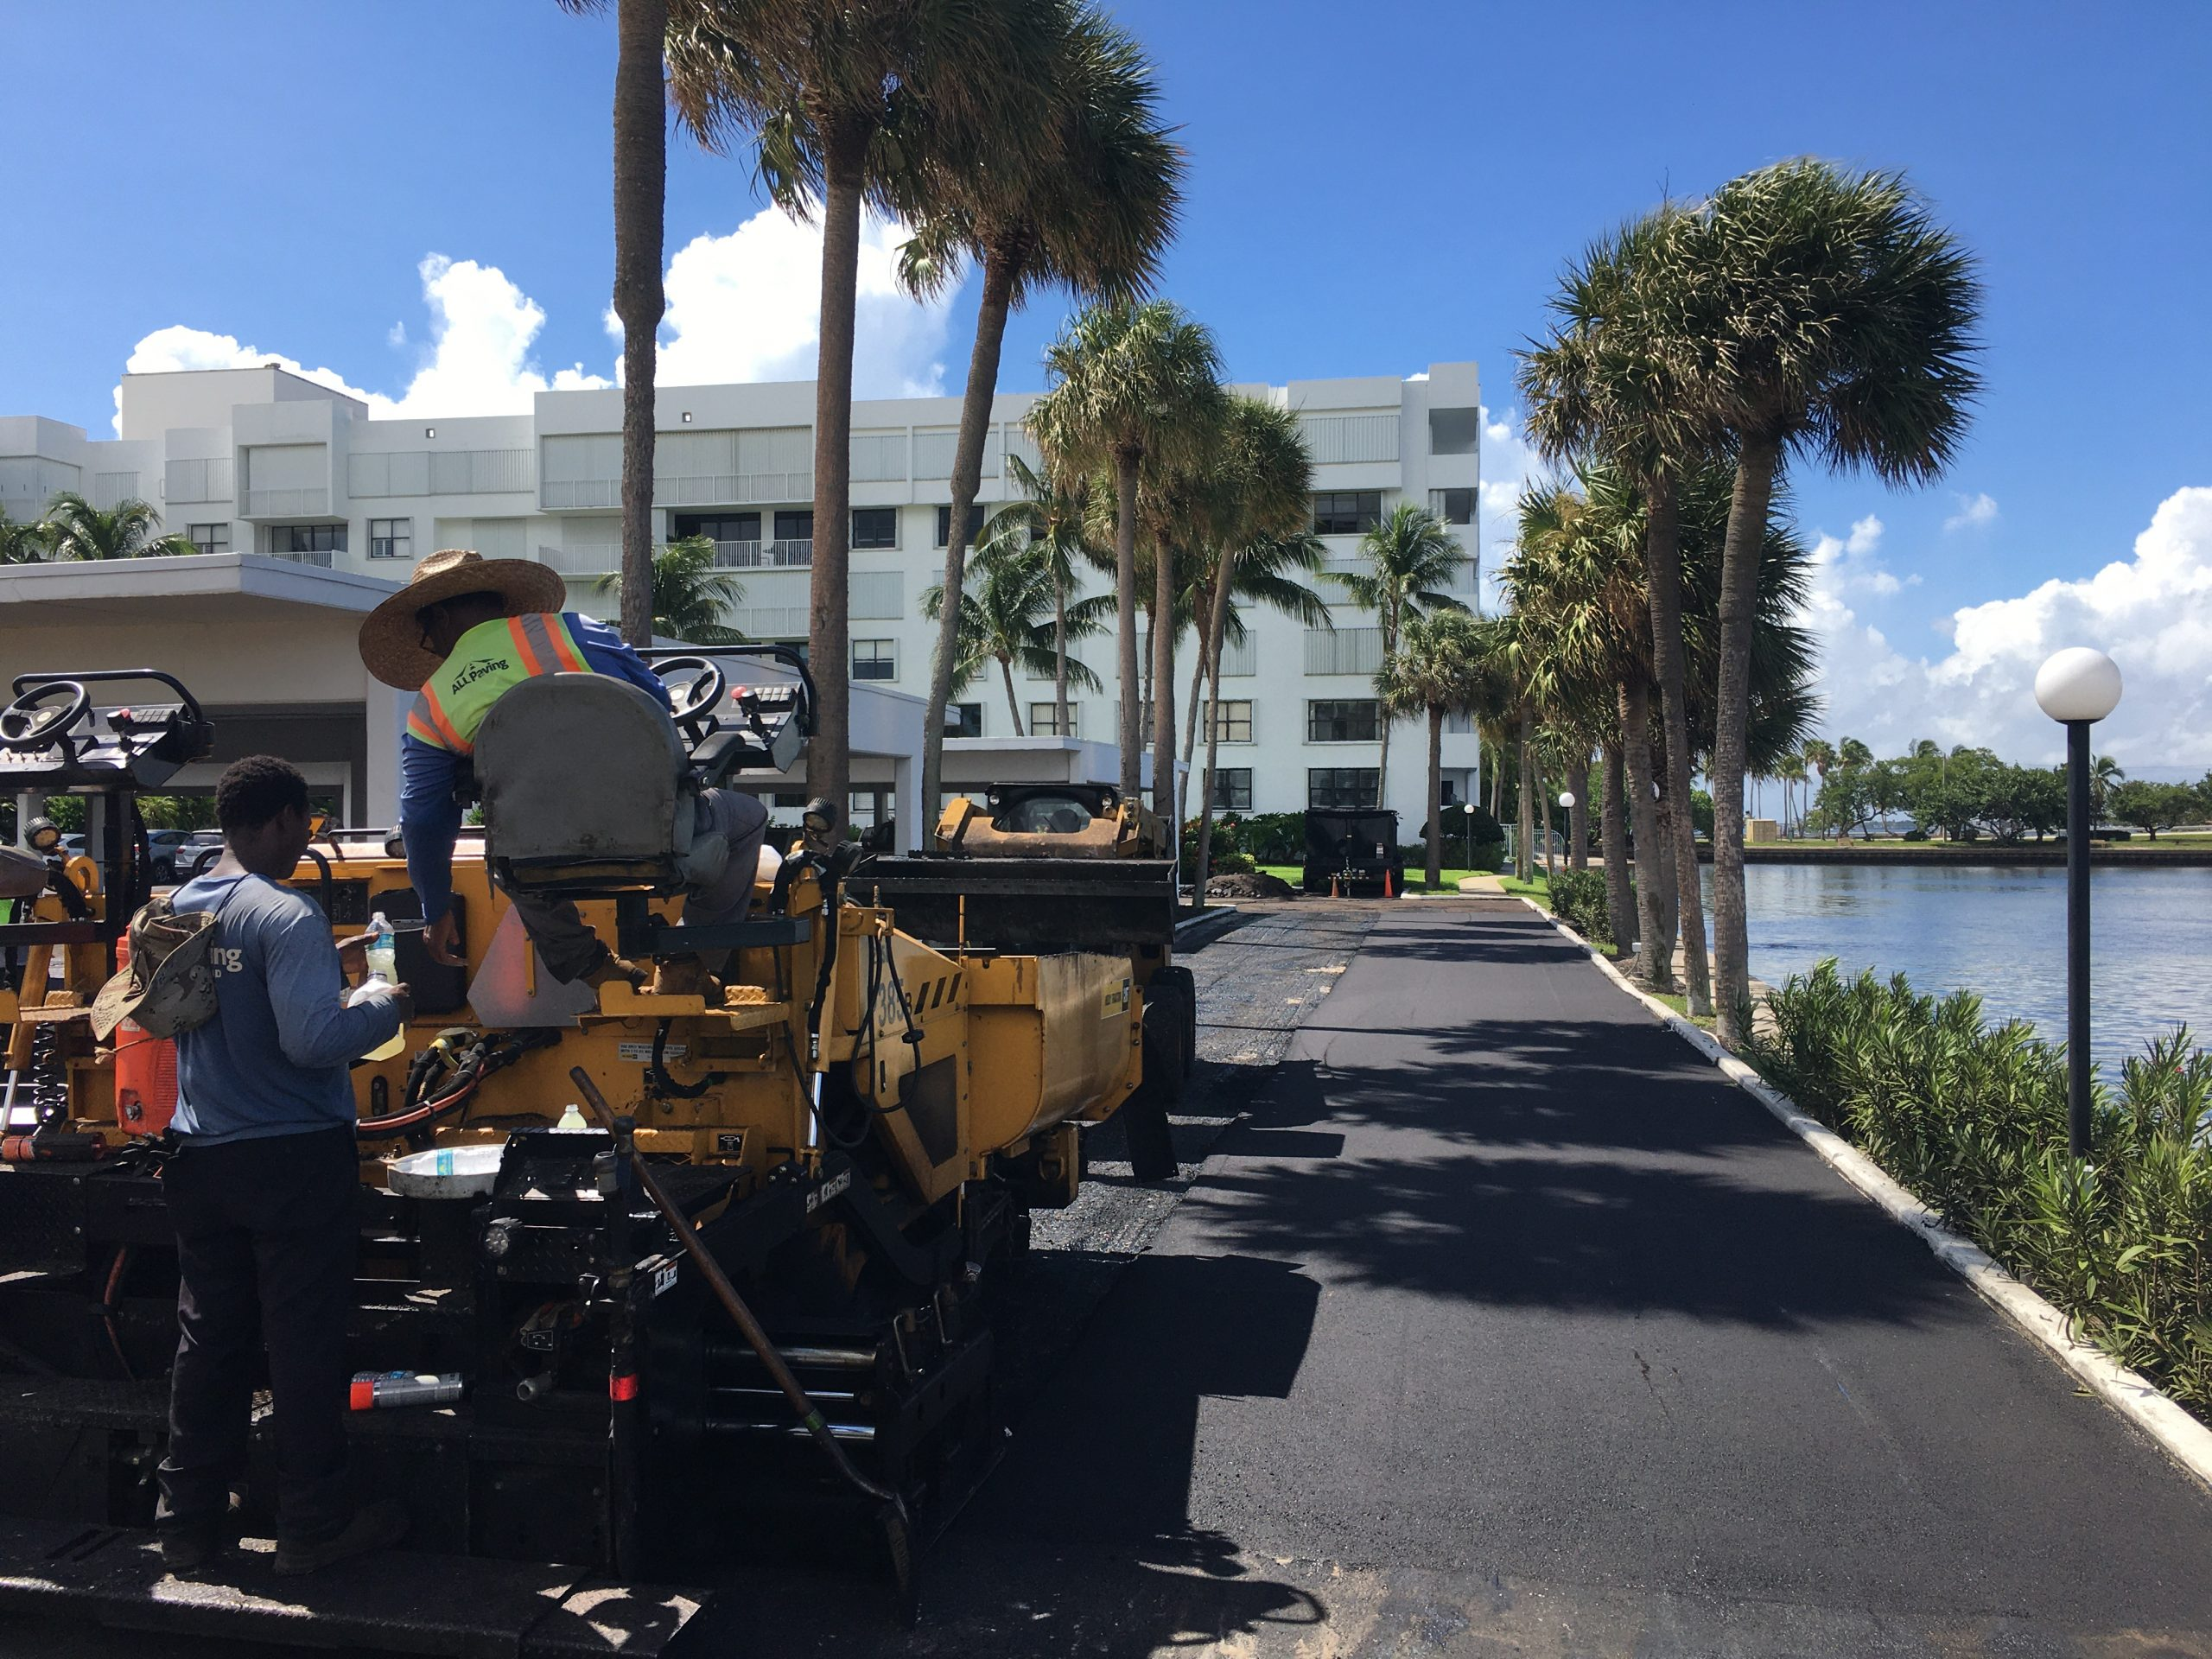 Asphalt paving equipment on public road beside water on a sunny day